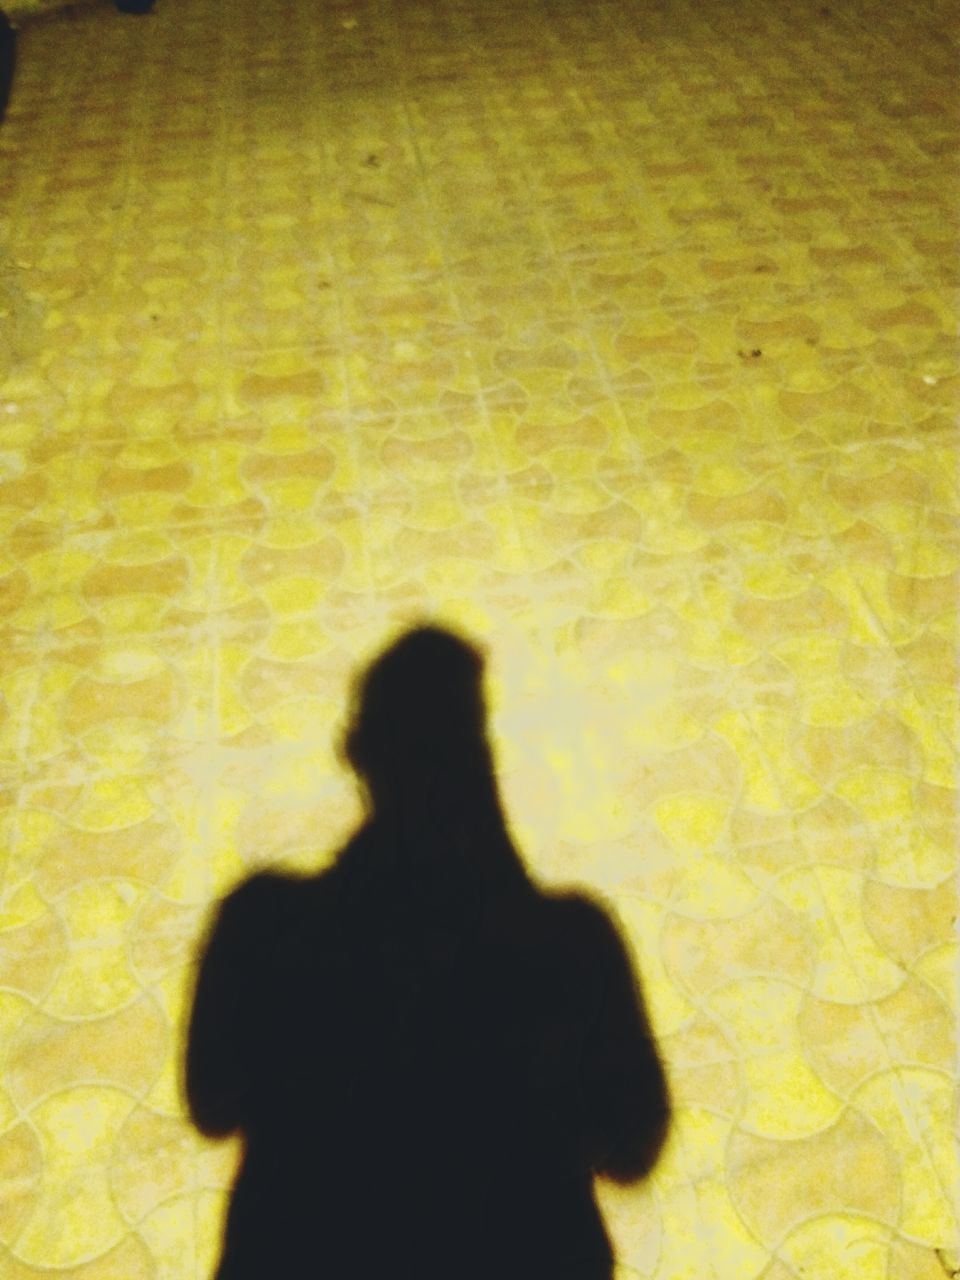 shadow, focus on shadow, silhouette, real people, yellow, one person, men, sunlight, standing, indoors, day, people